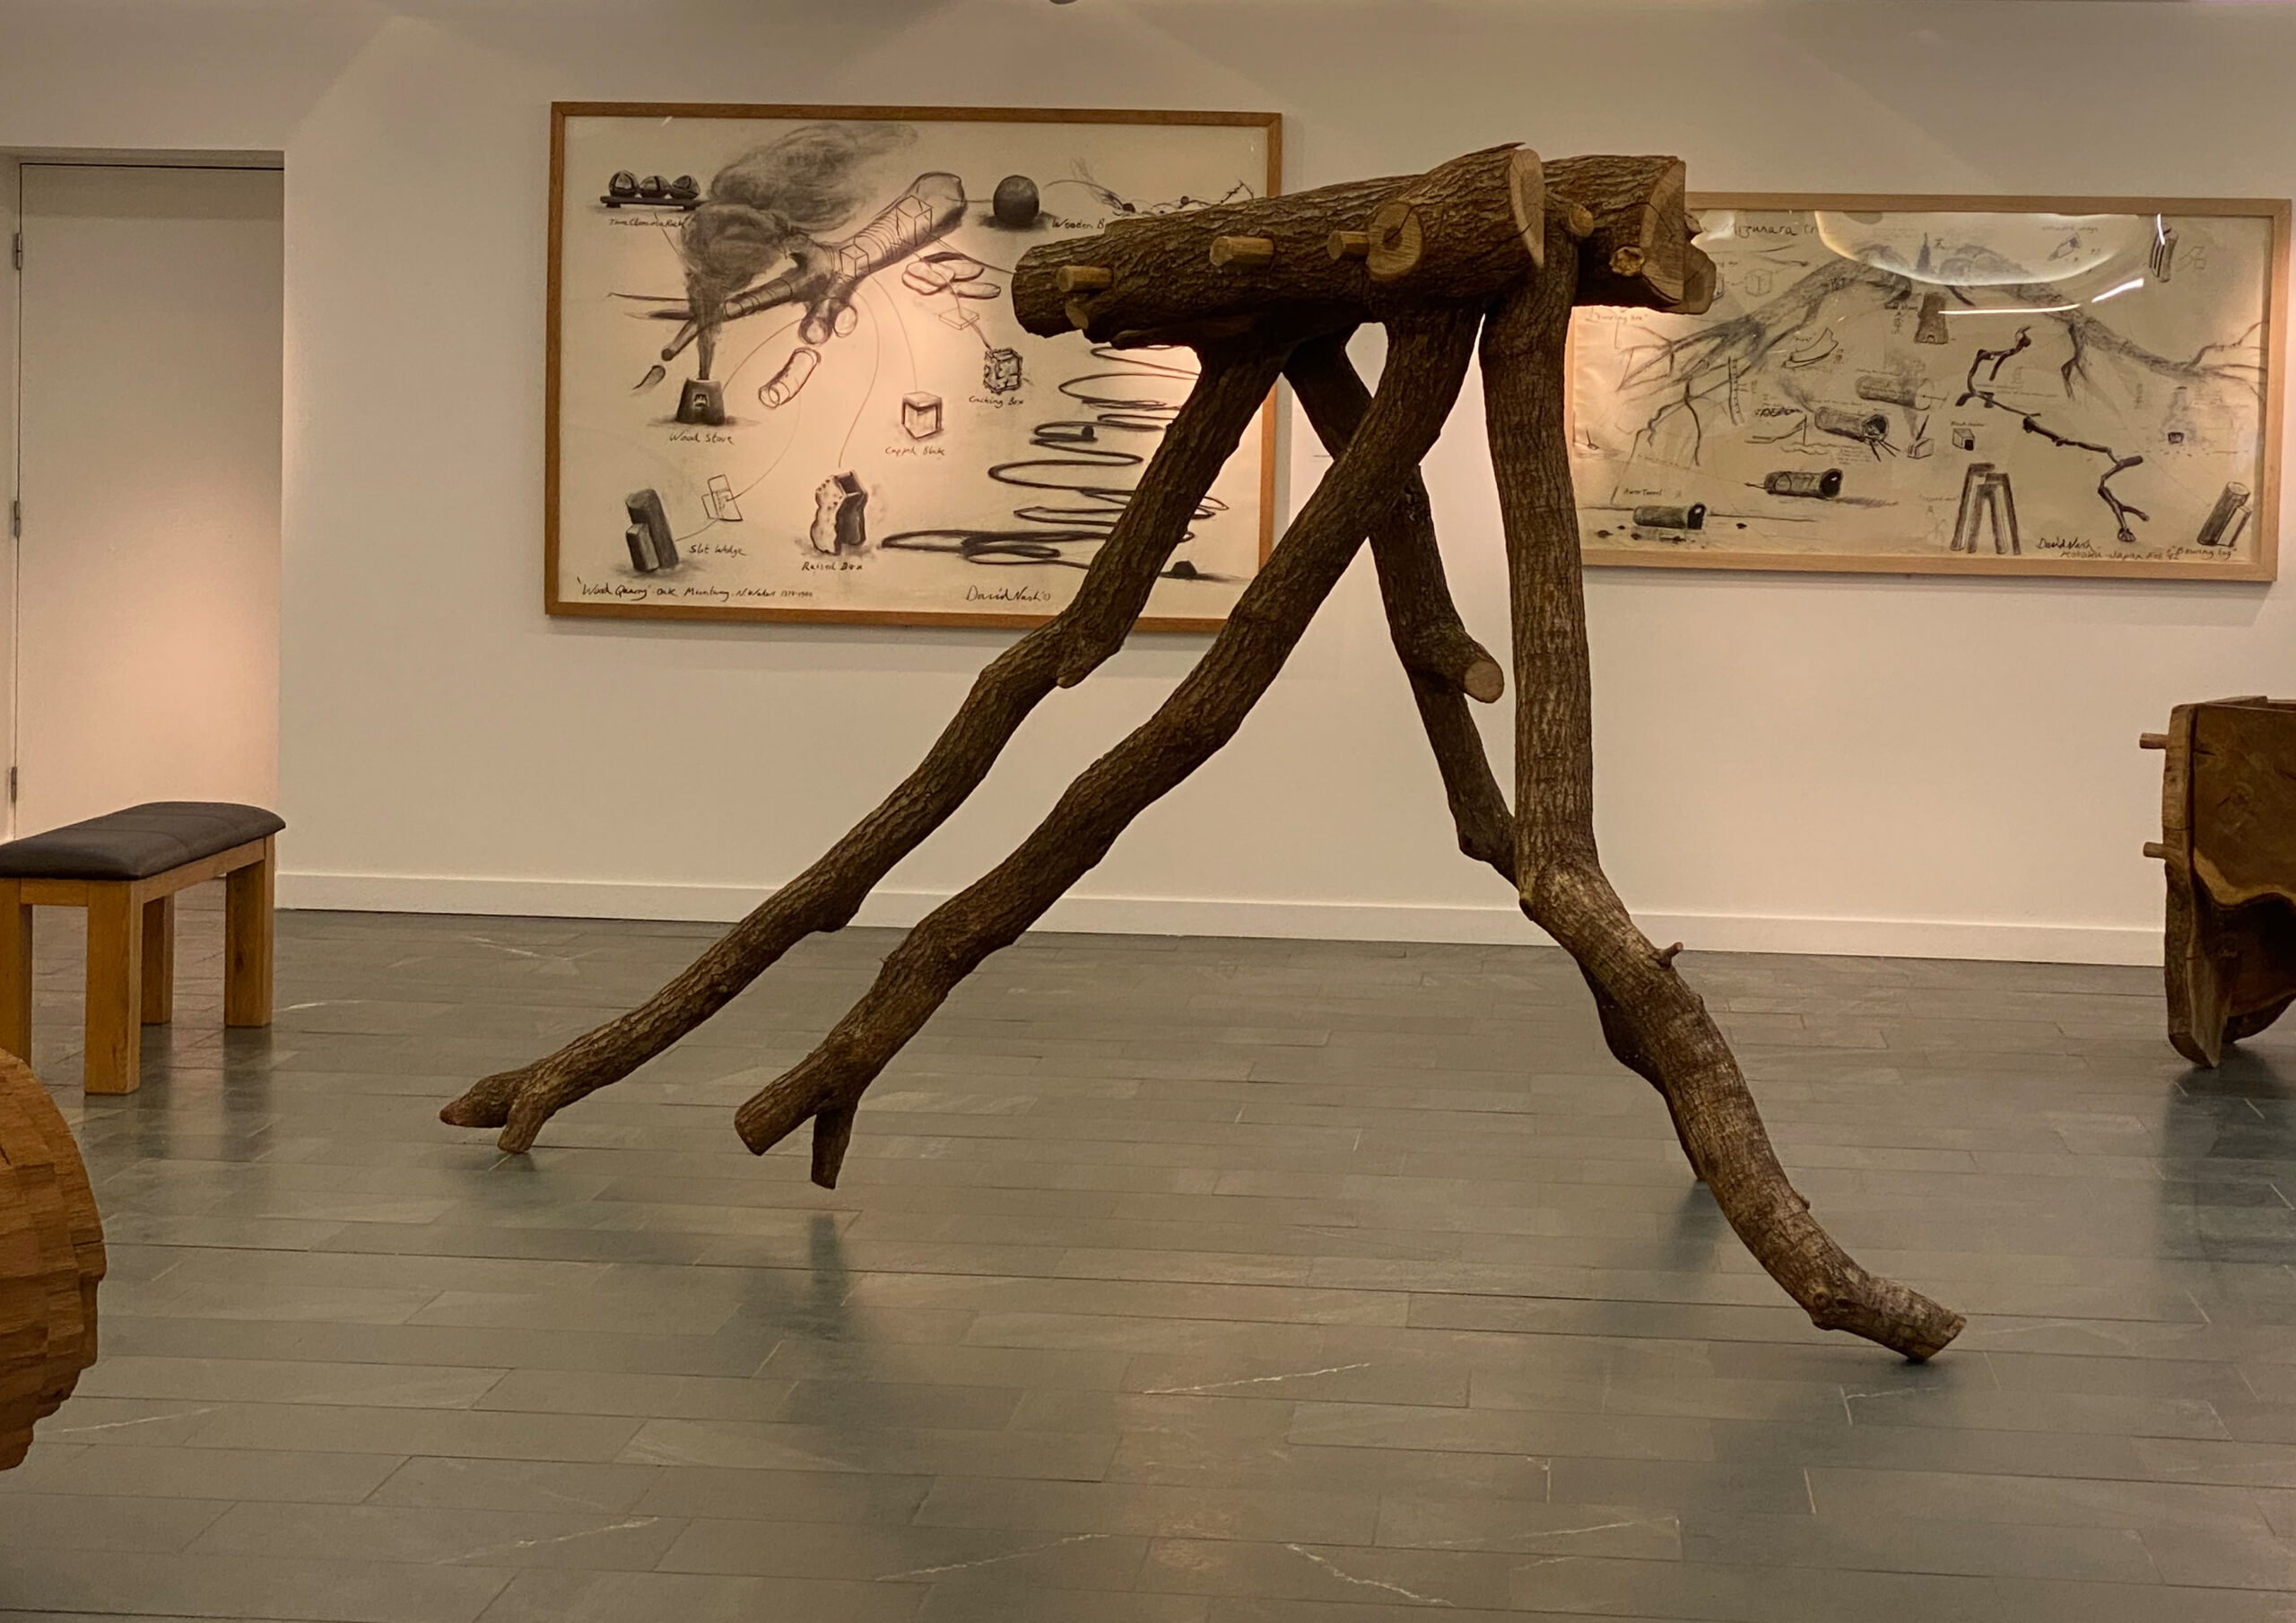 The image shows a wooden sculpture resembling a tree trunk supported by four bowing legs in the centre of the frame, with drawings of tree trunks in frames behind it on the gallery wall.